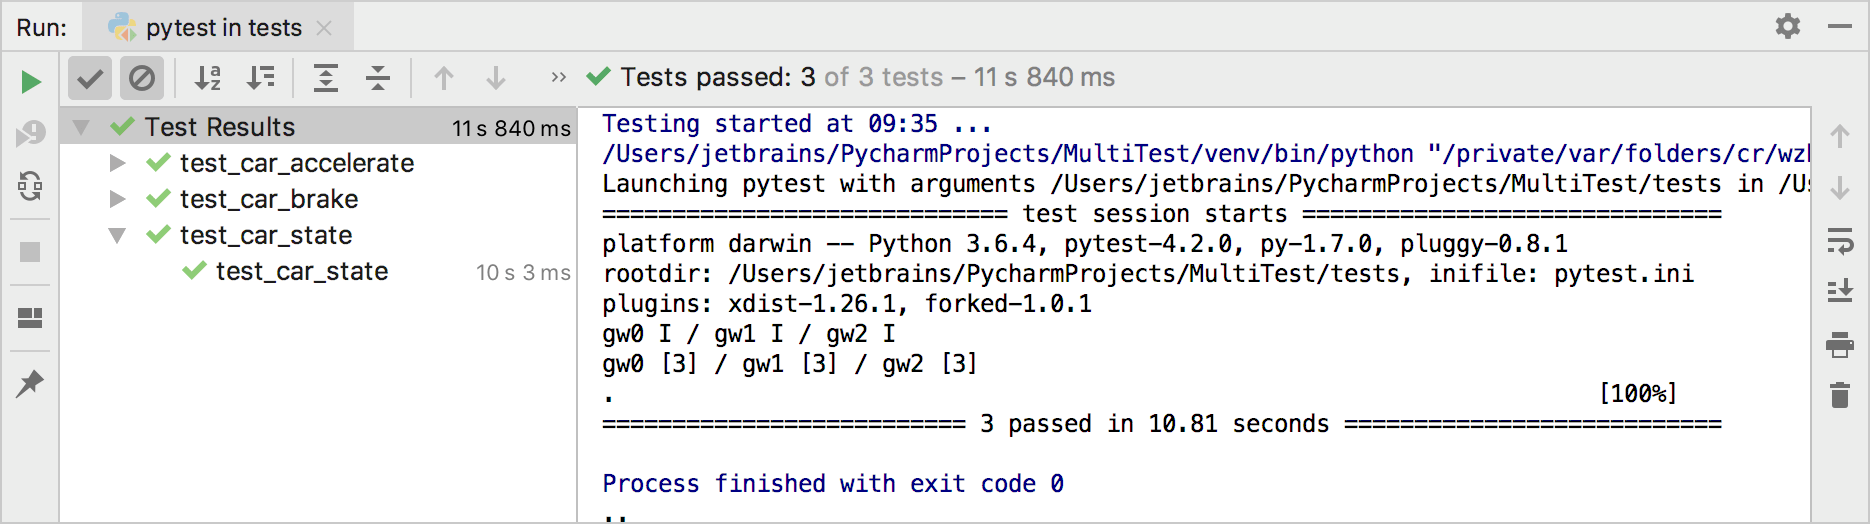 Running tests in parallel